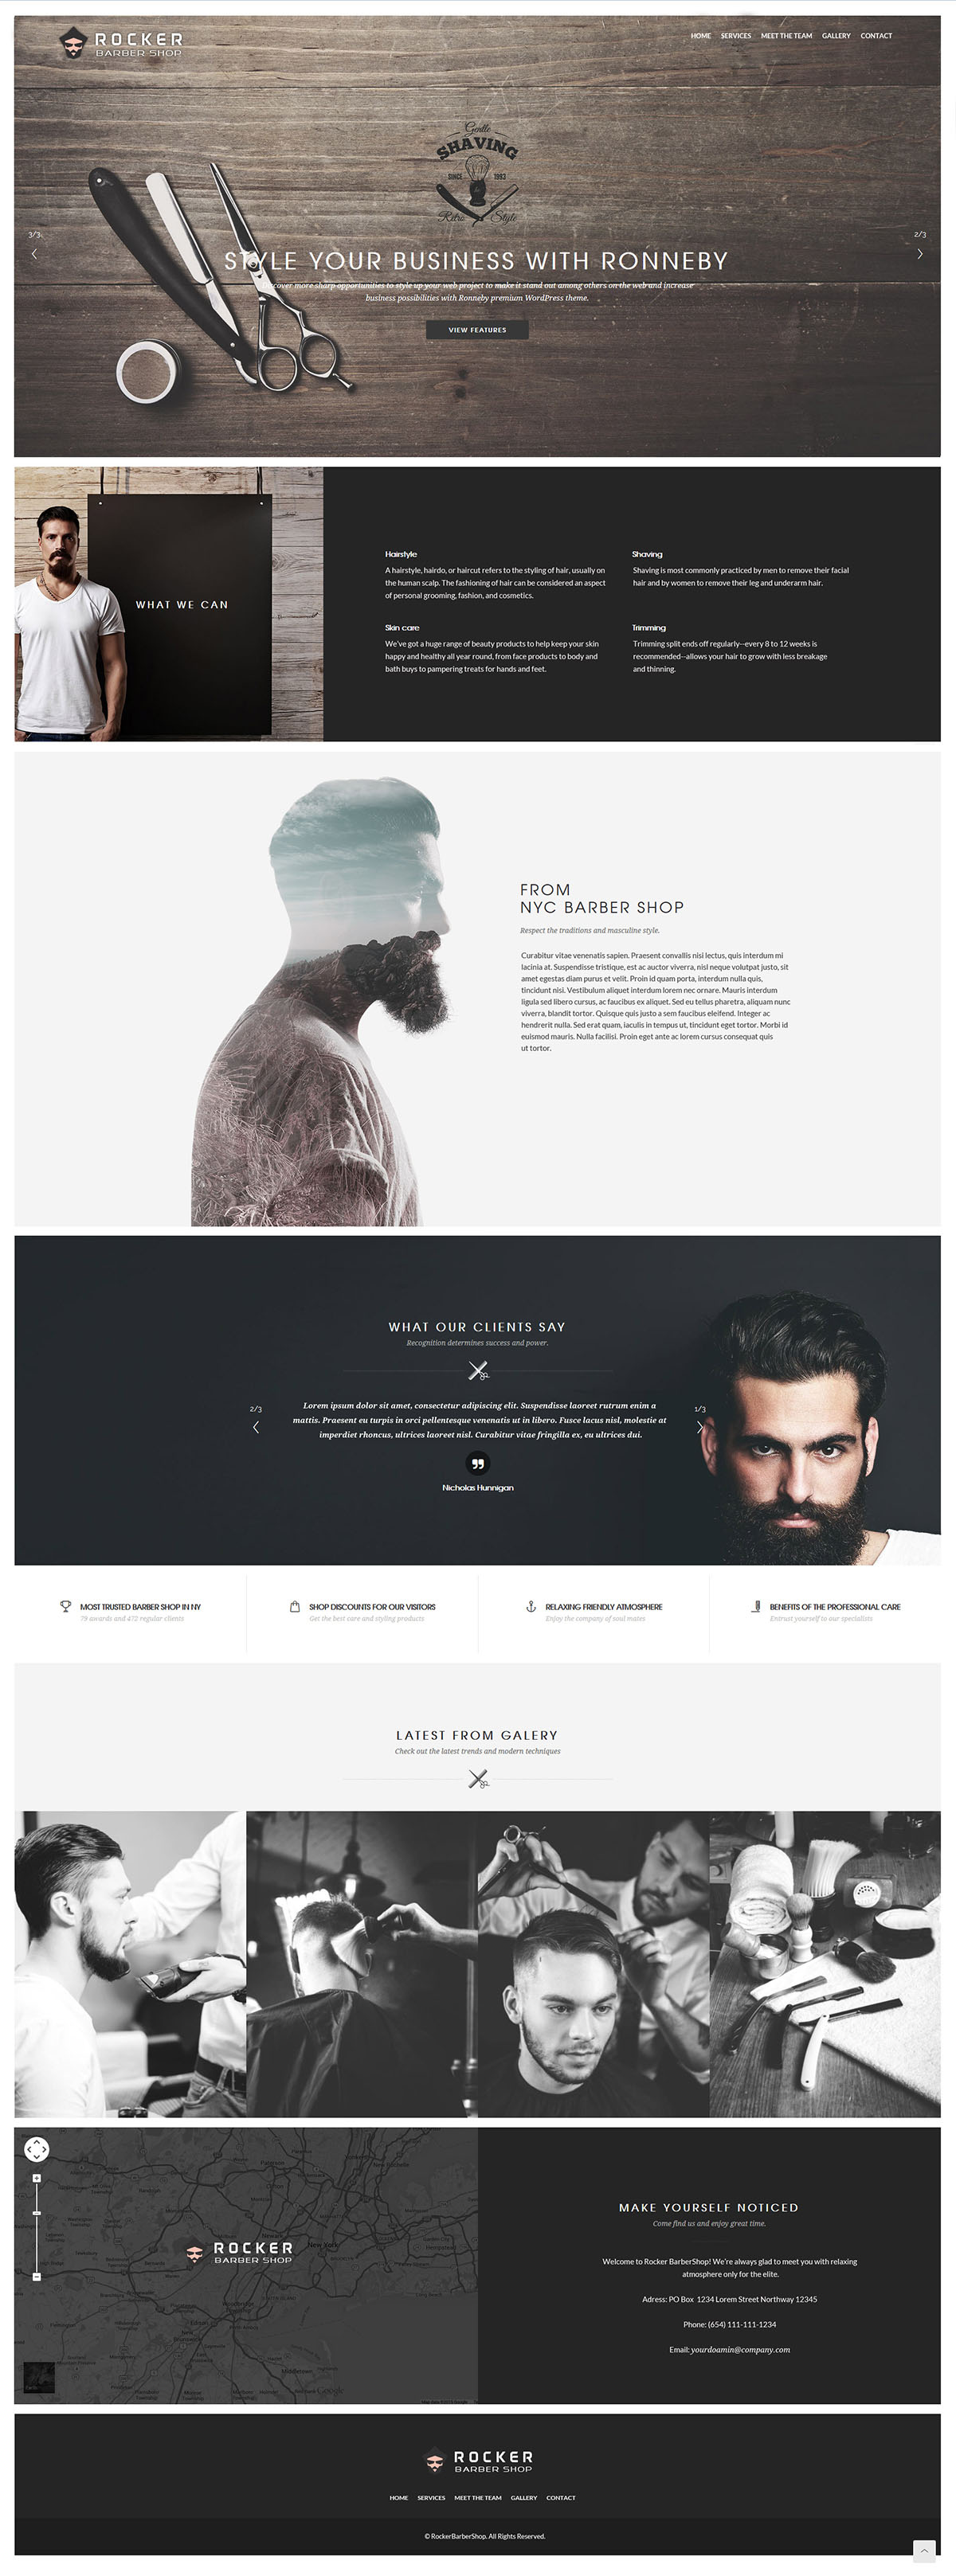 $950 Professional Custom Website Design